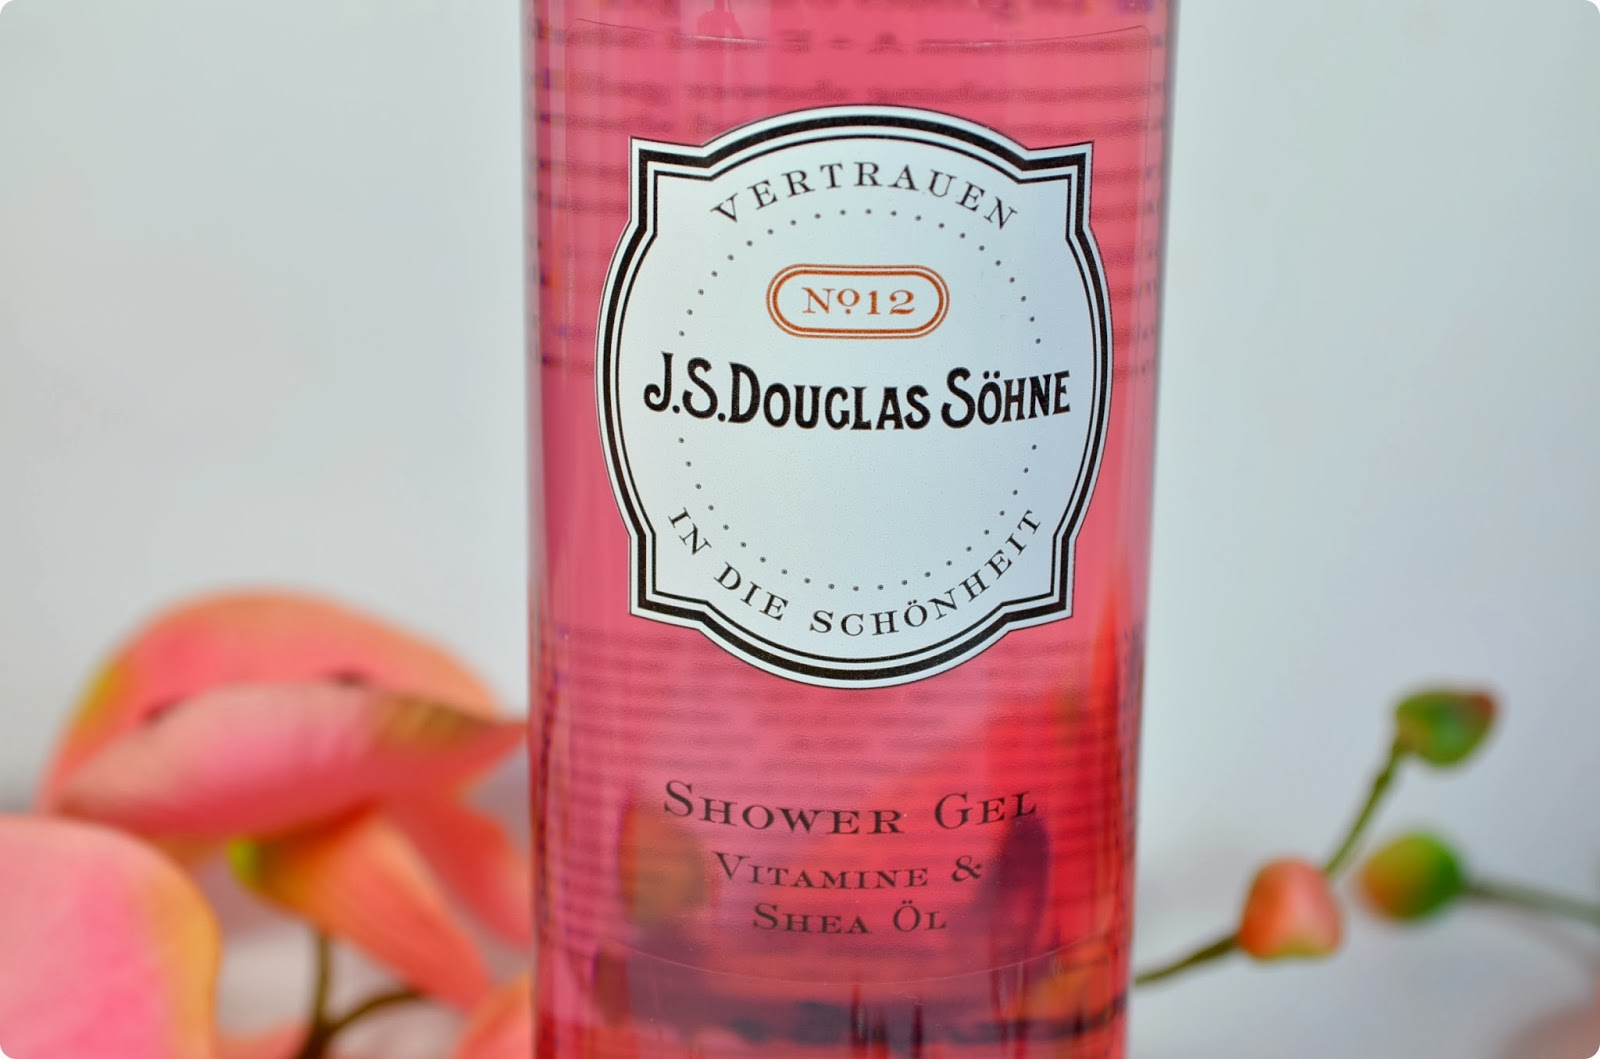 Review J.S Douglas Söhne VITAMINE & SHEA Shower Gel